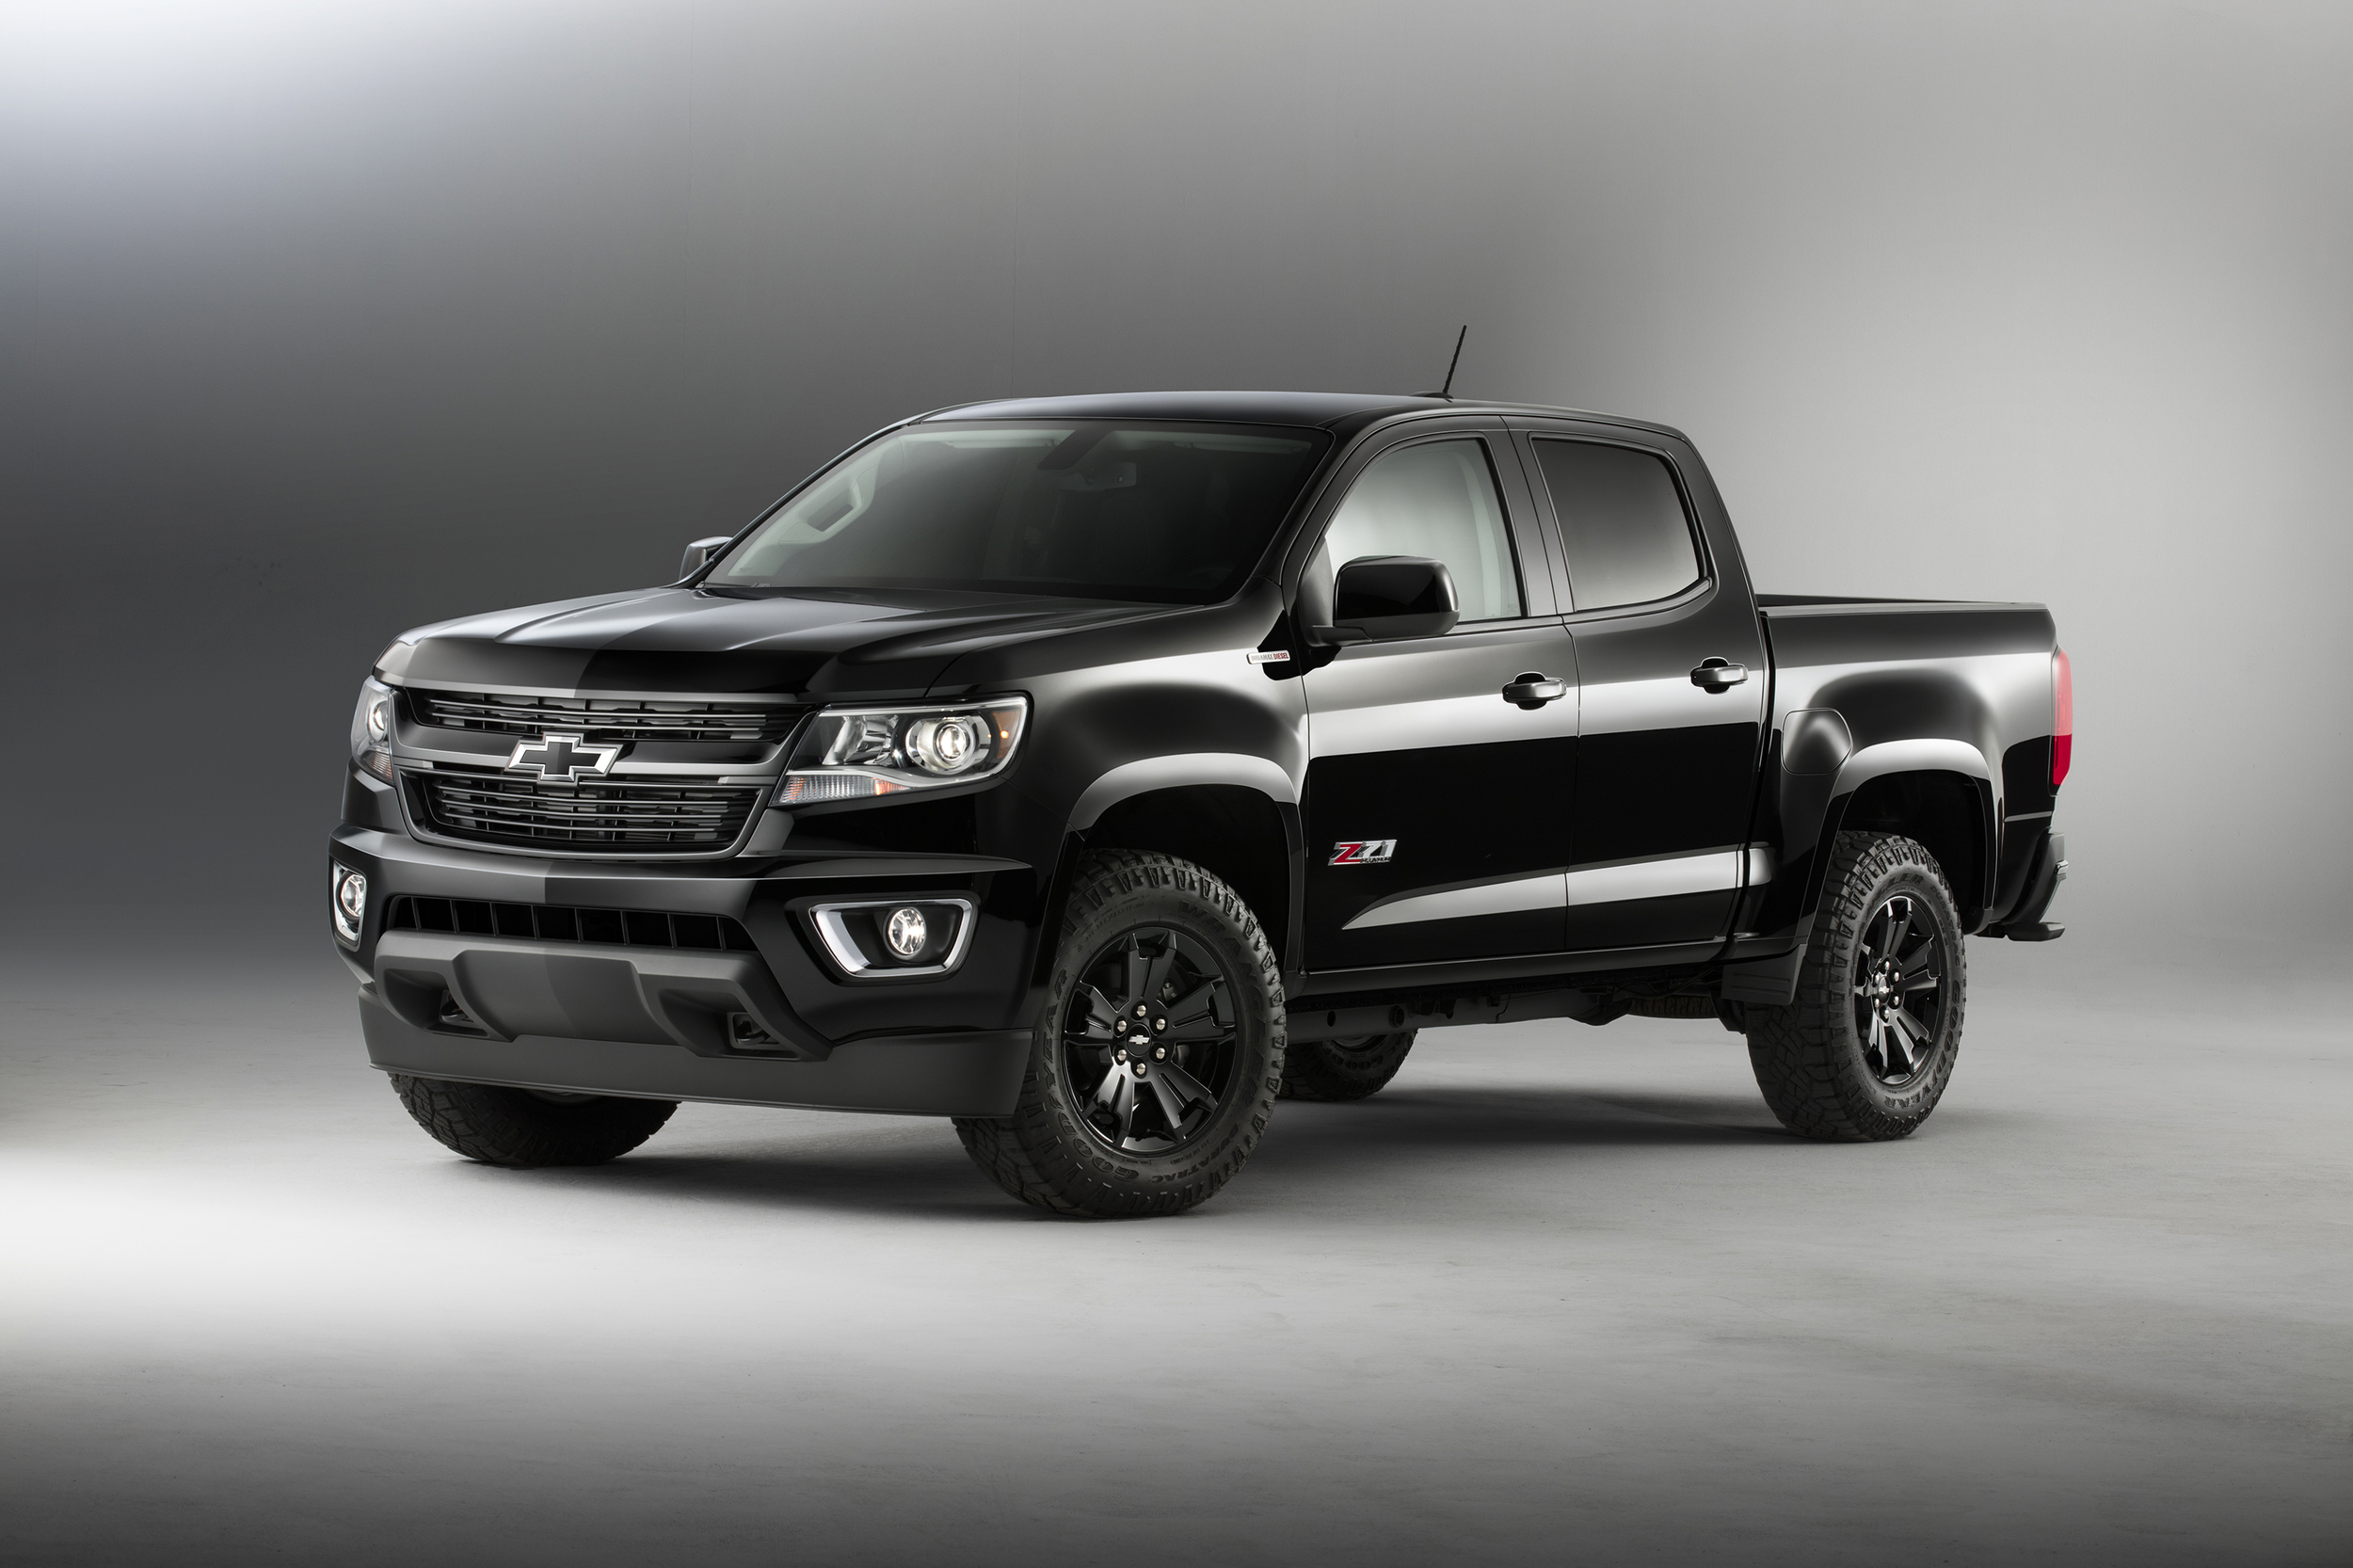 chevy info price for chevrolet silverado sale reaper black autosdrive truck